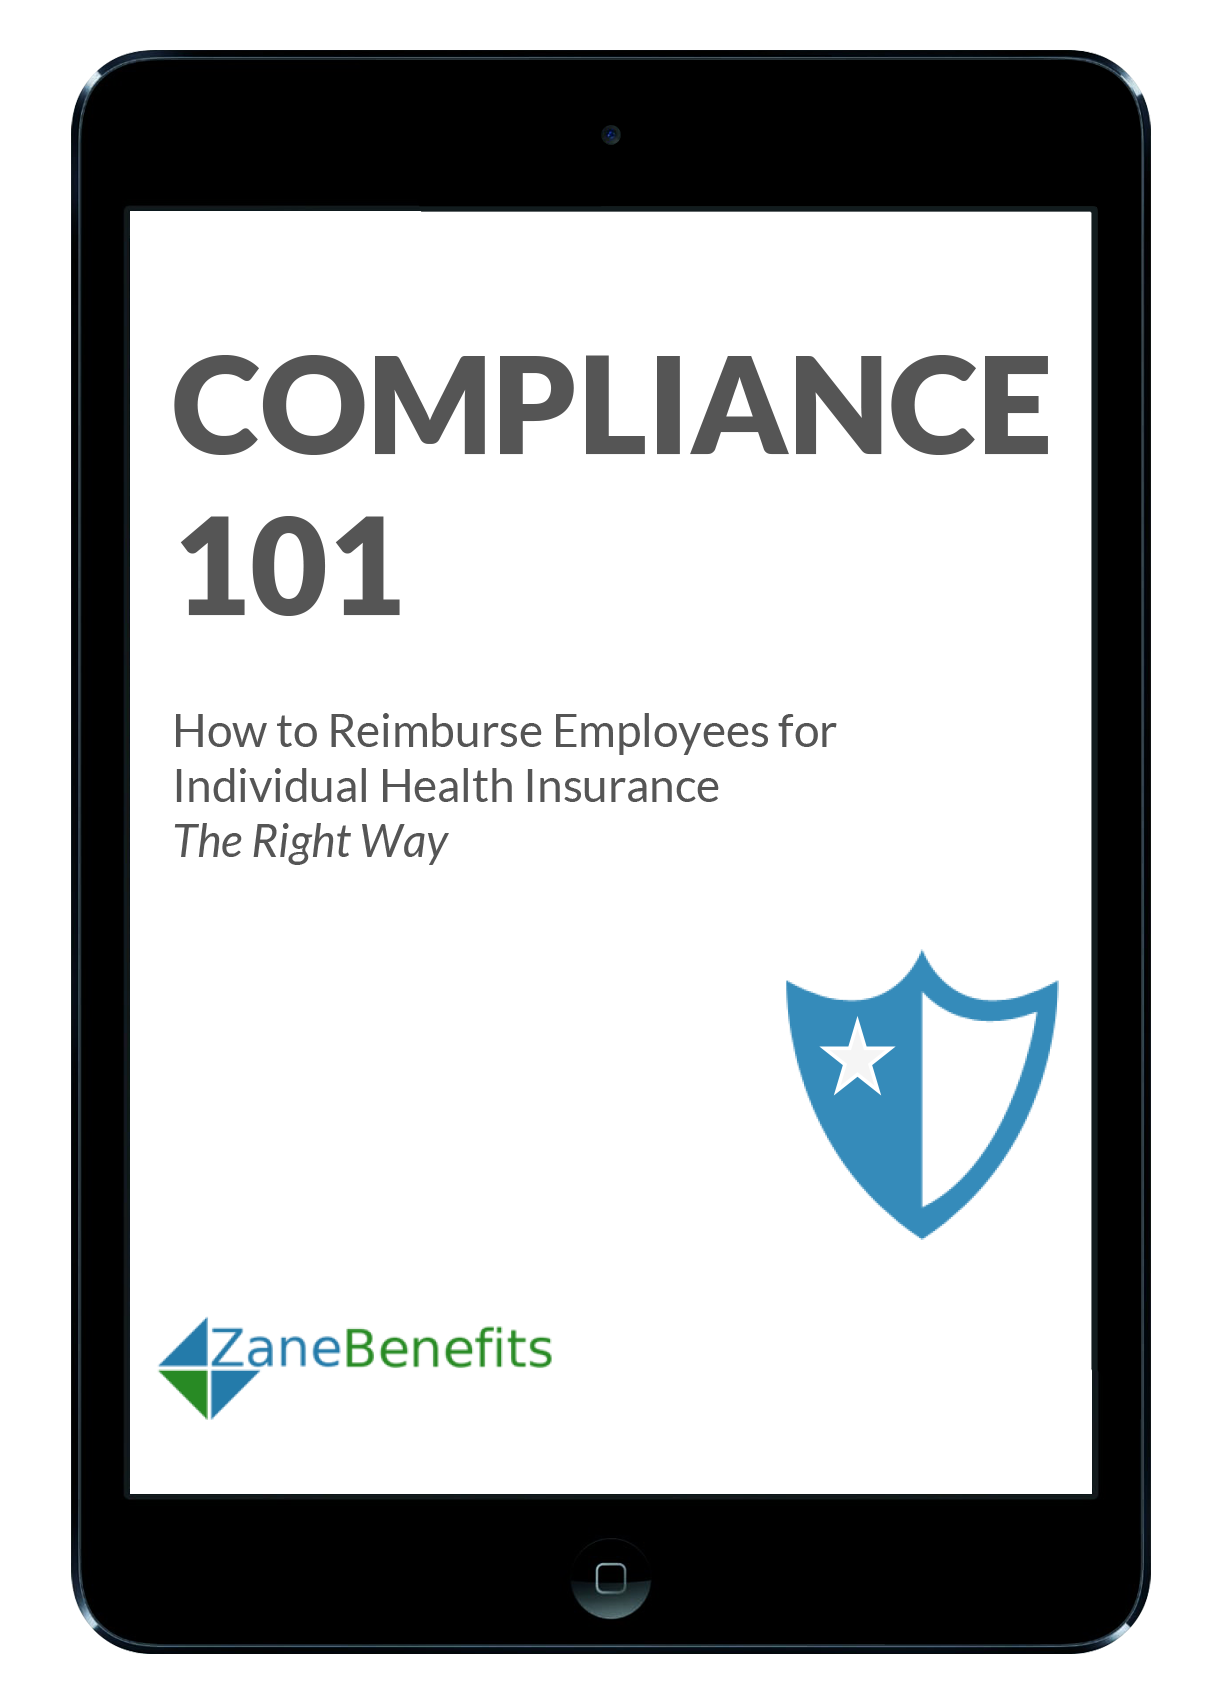 Compliance 101 - How to Reimburse Employees for Individual Health Insurance The Right Way